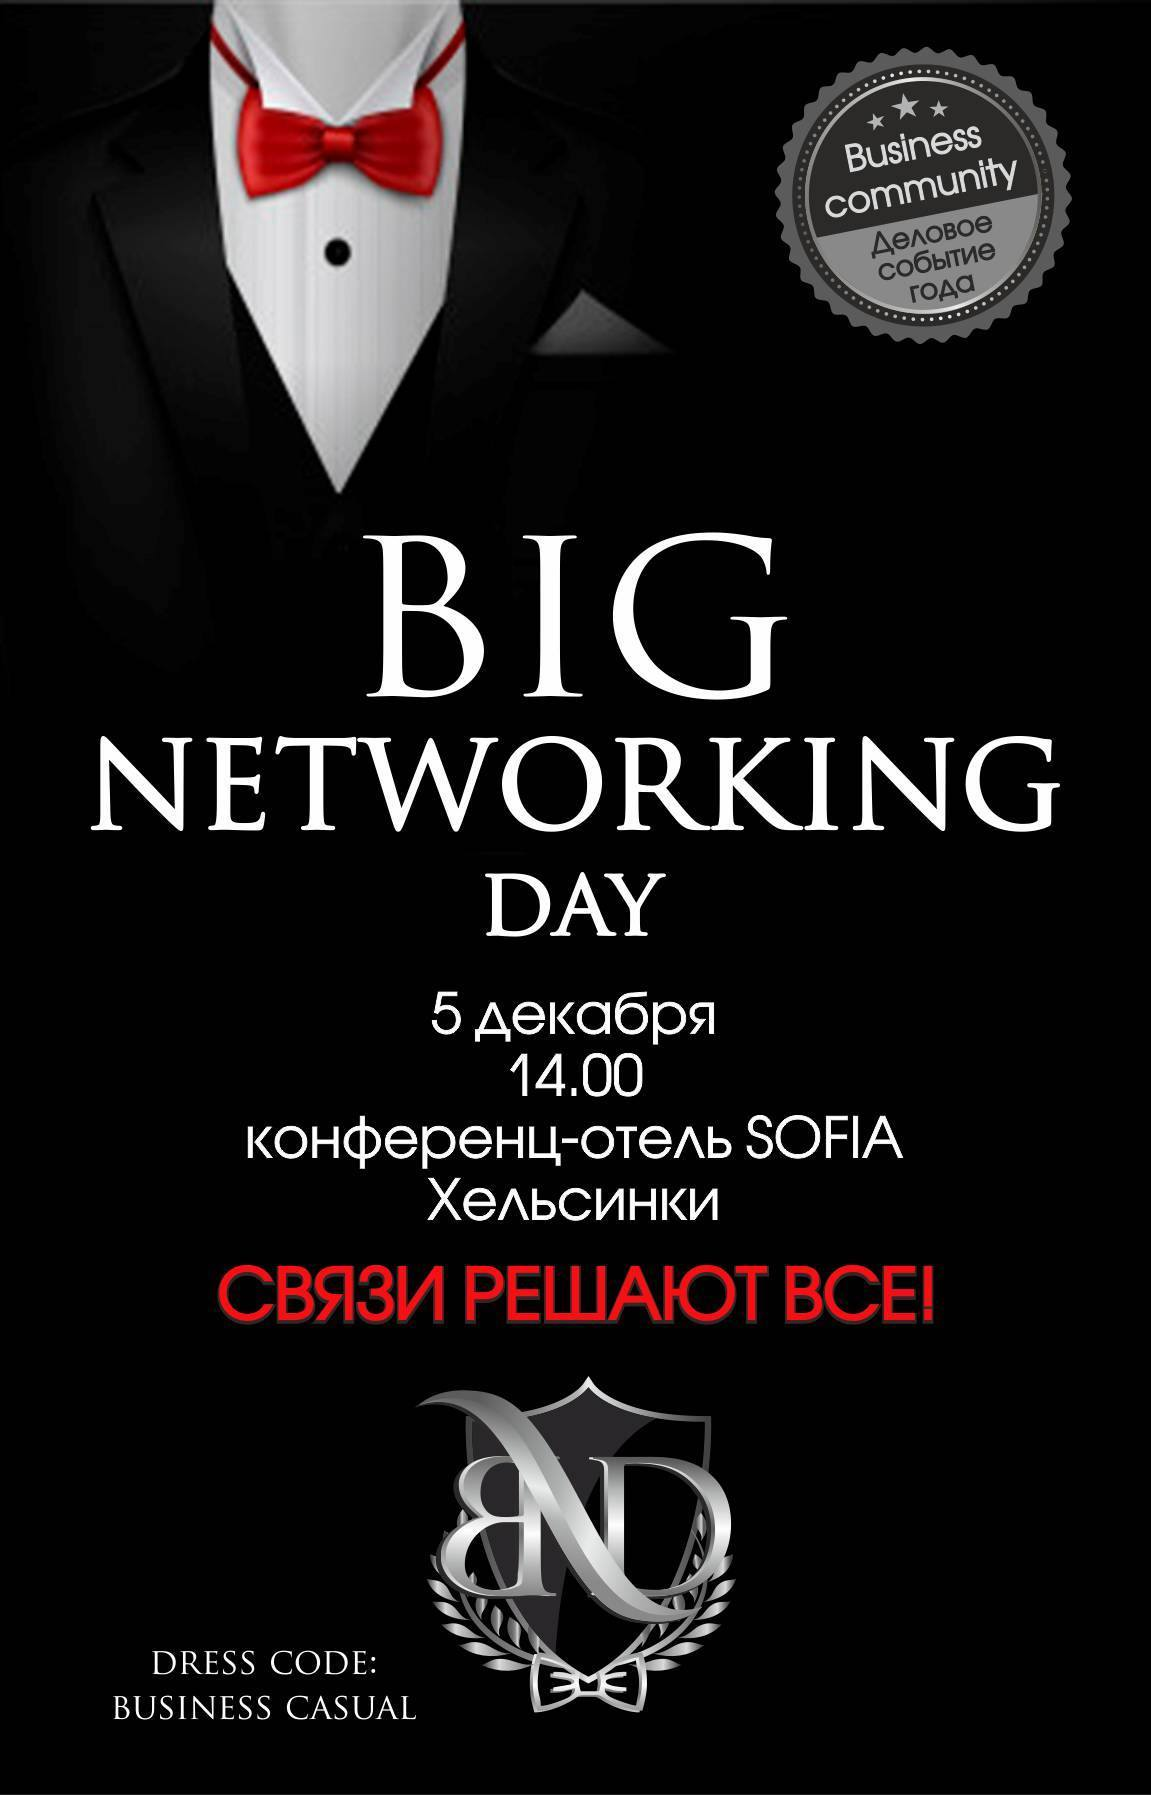 Big Networking Day